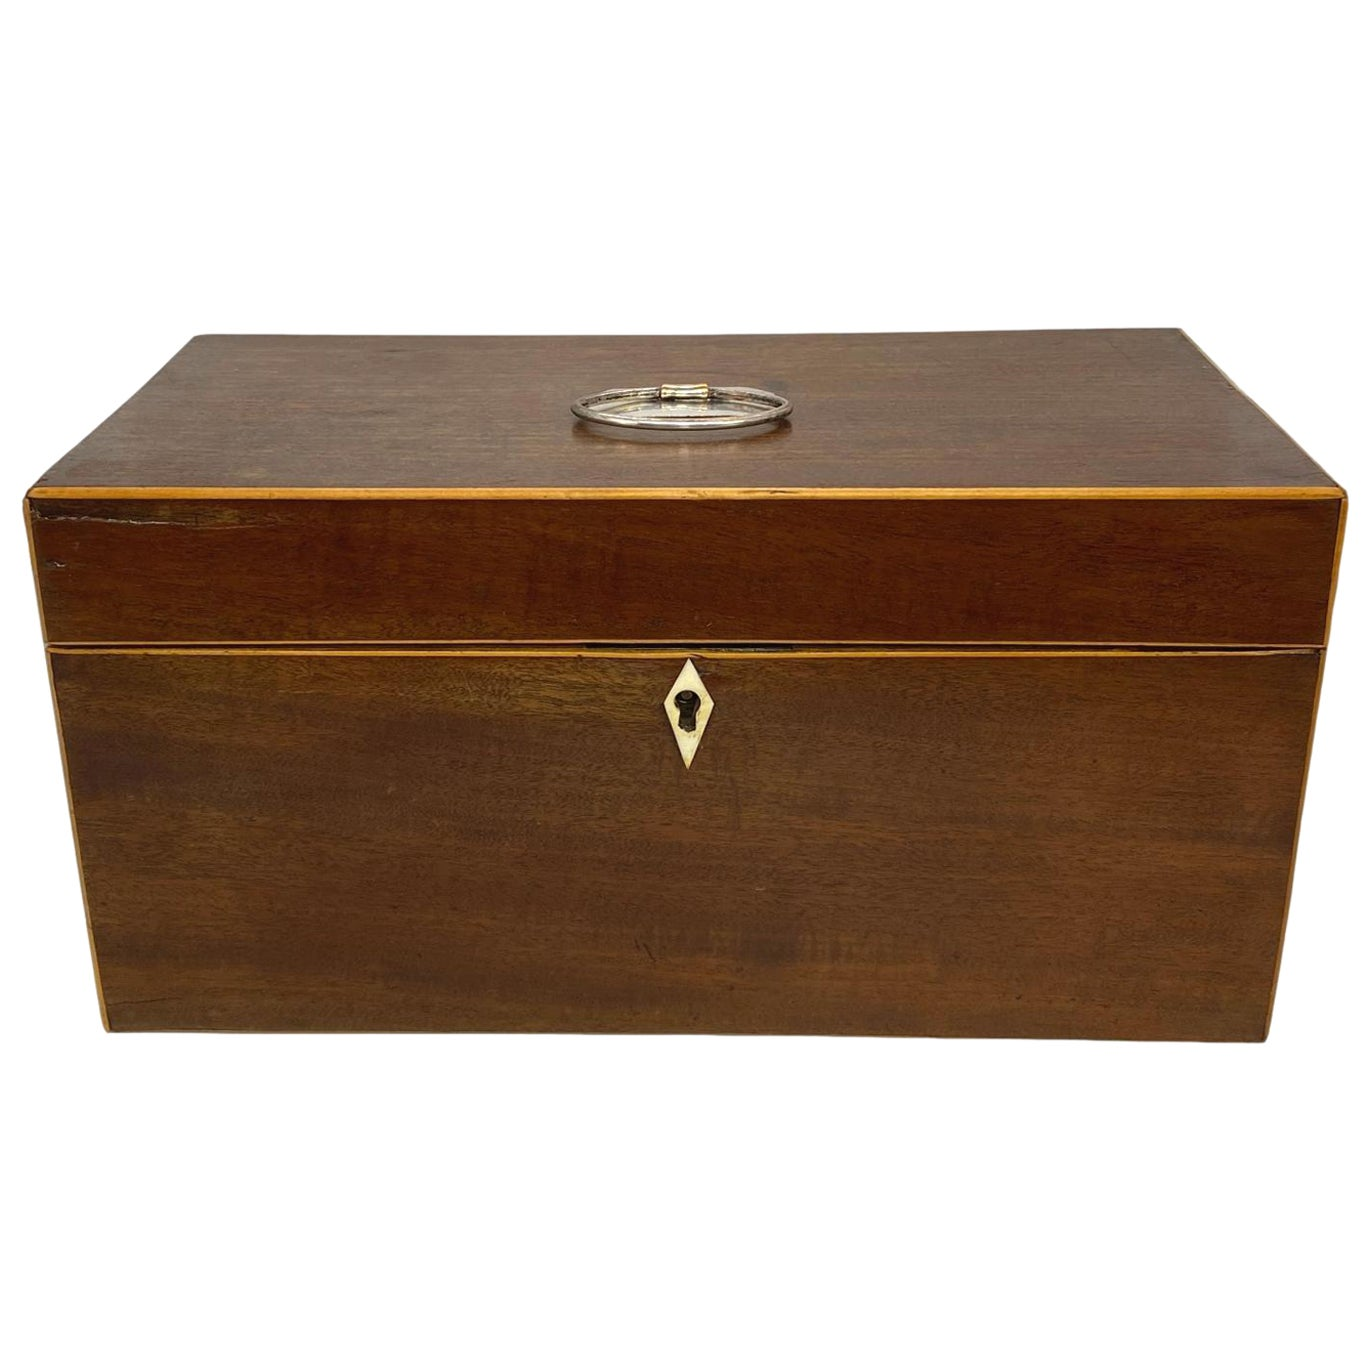 Antique George III Tea Caddy Box, Mahogany and Satinwood Banding, English, 1780